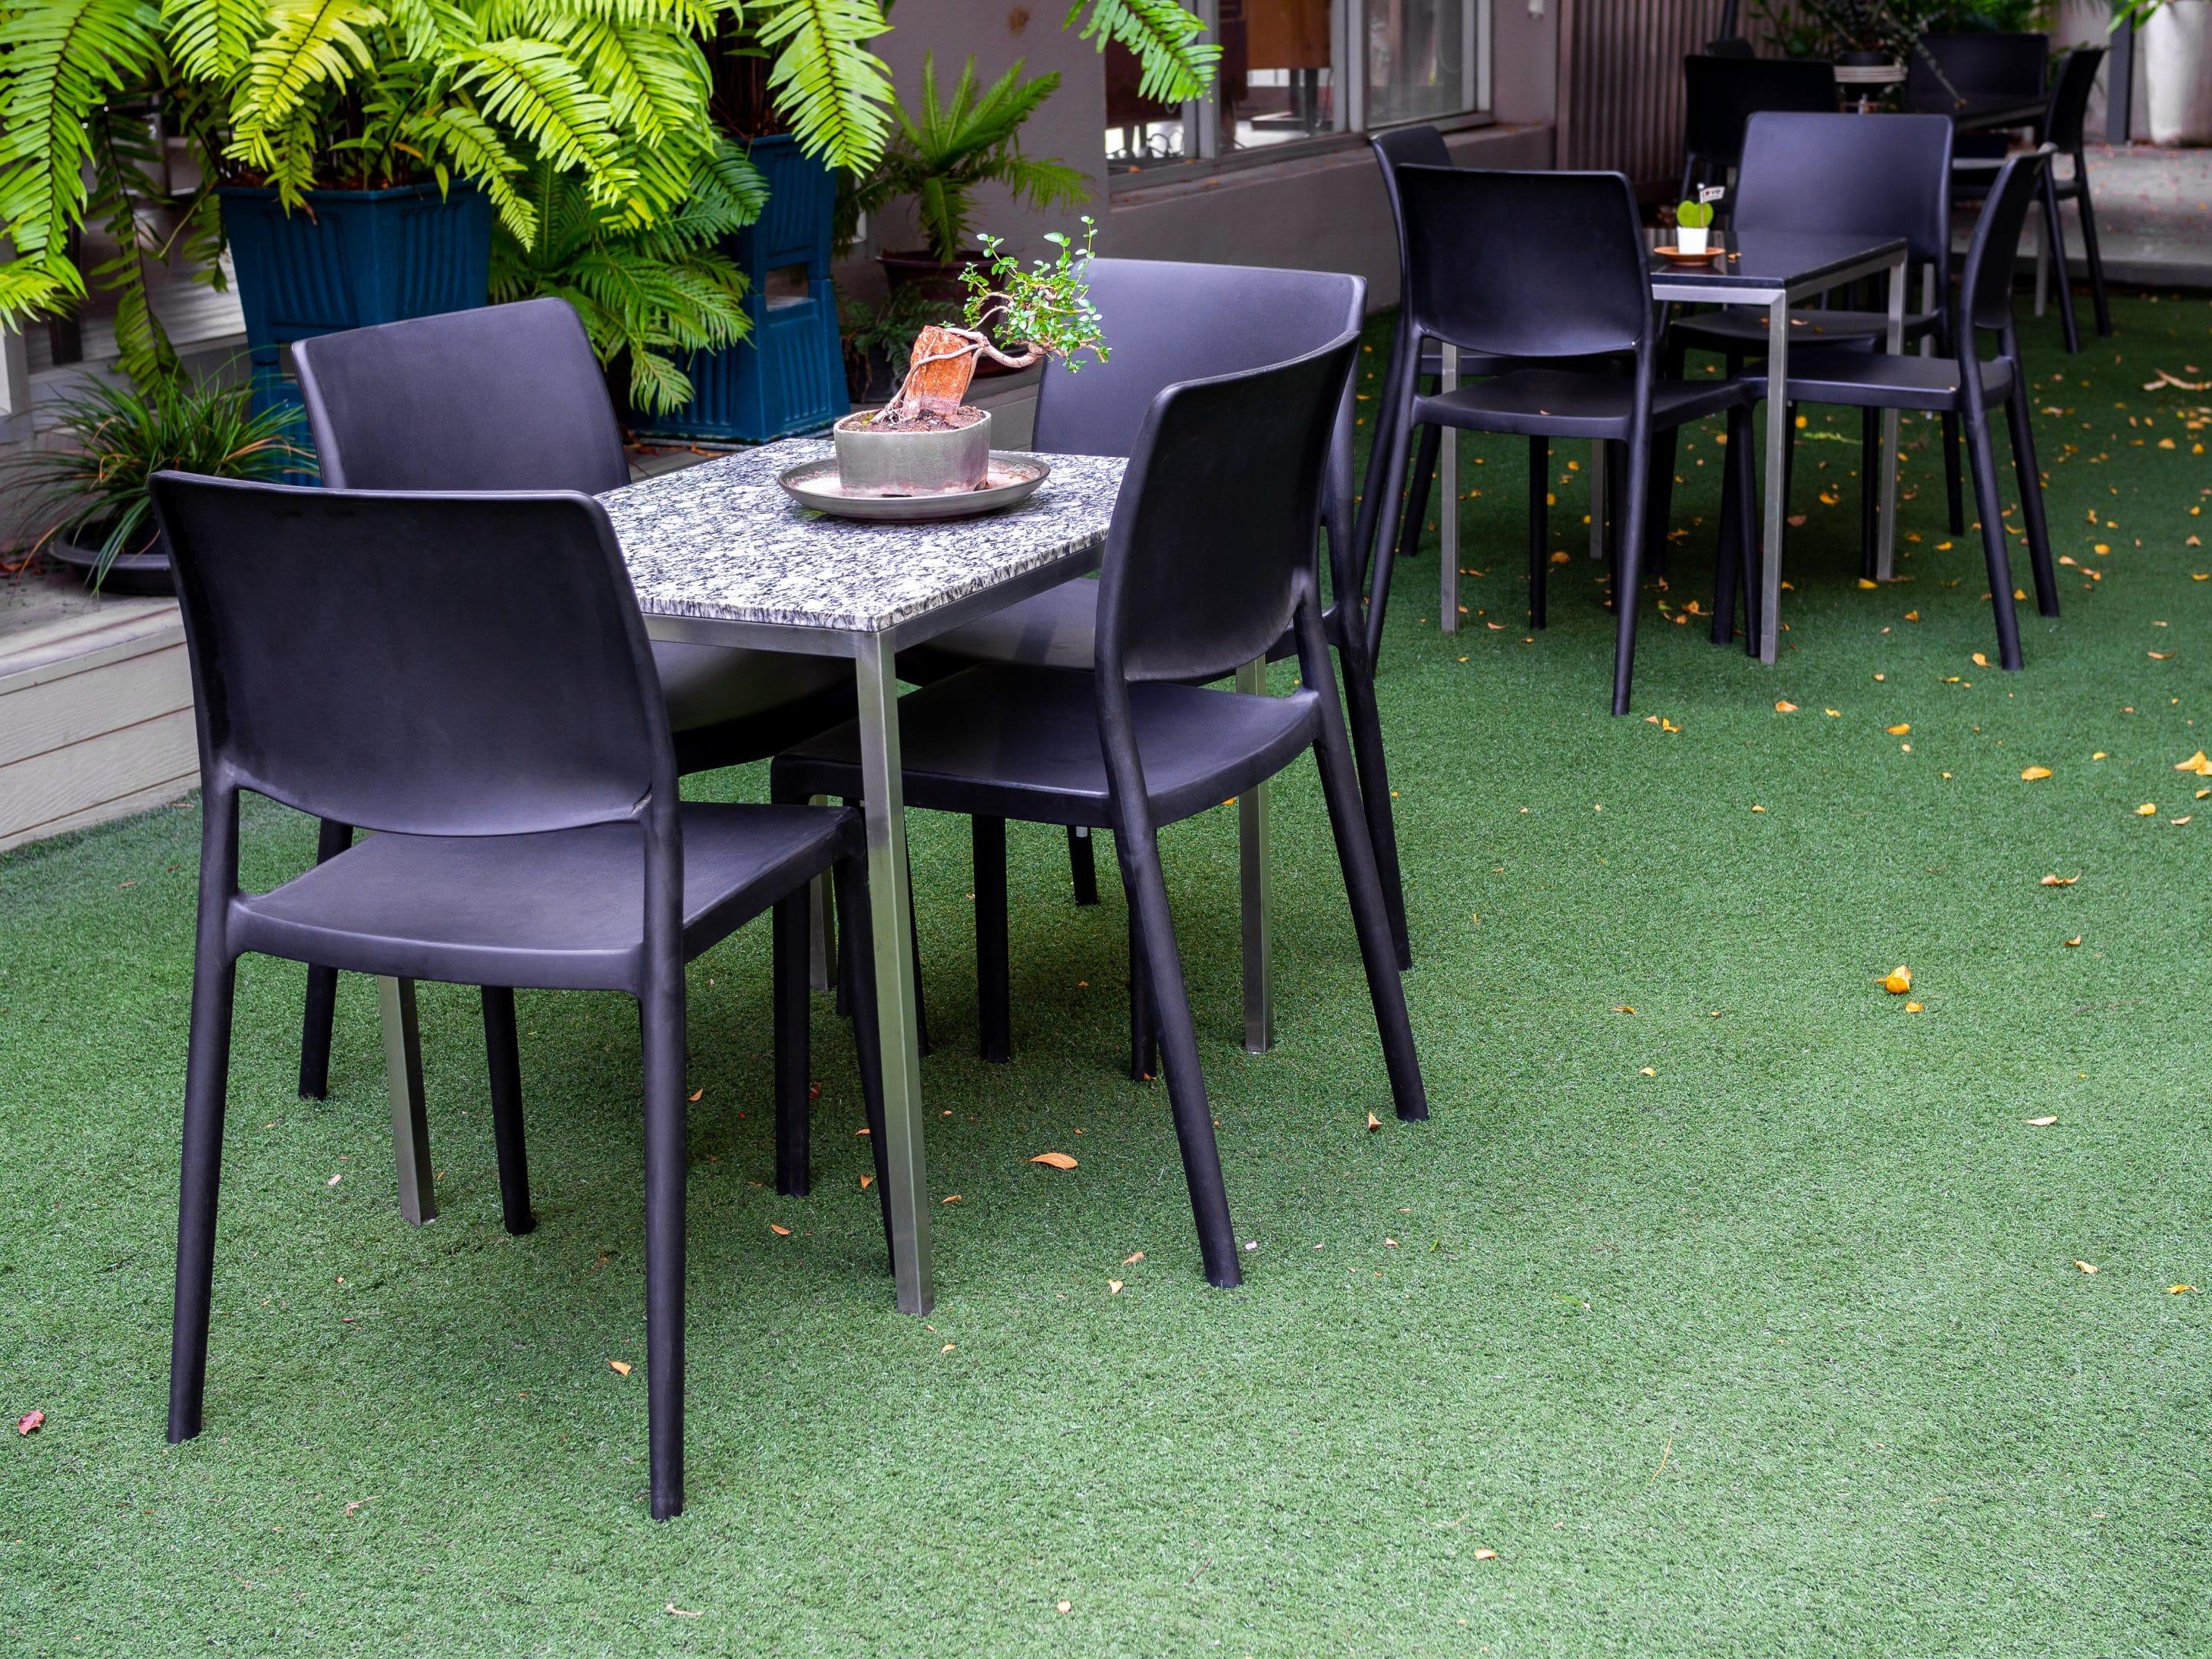 Synthetic Grass in Aged Care